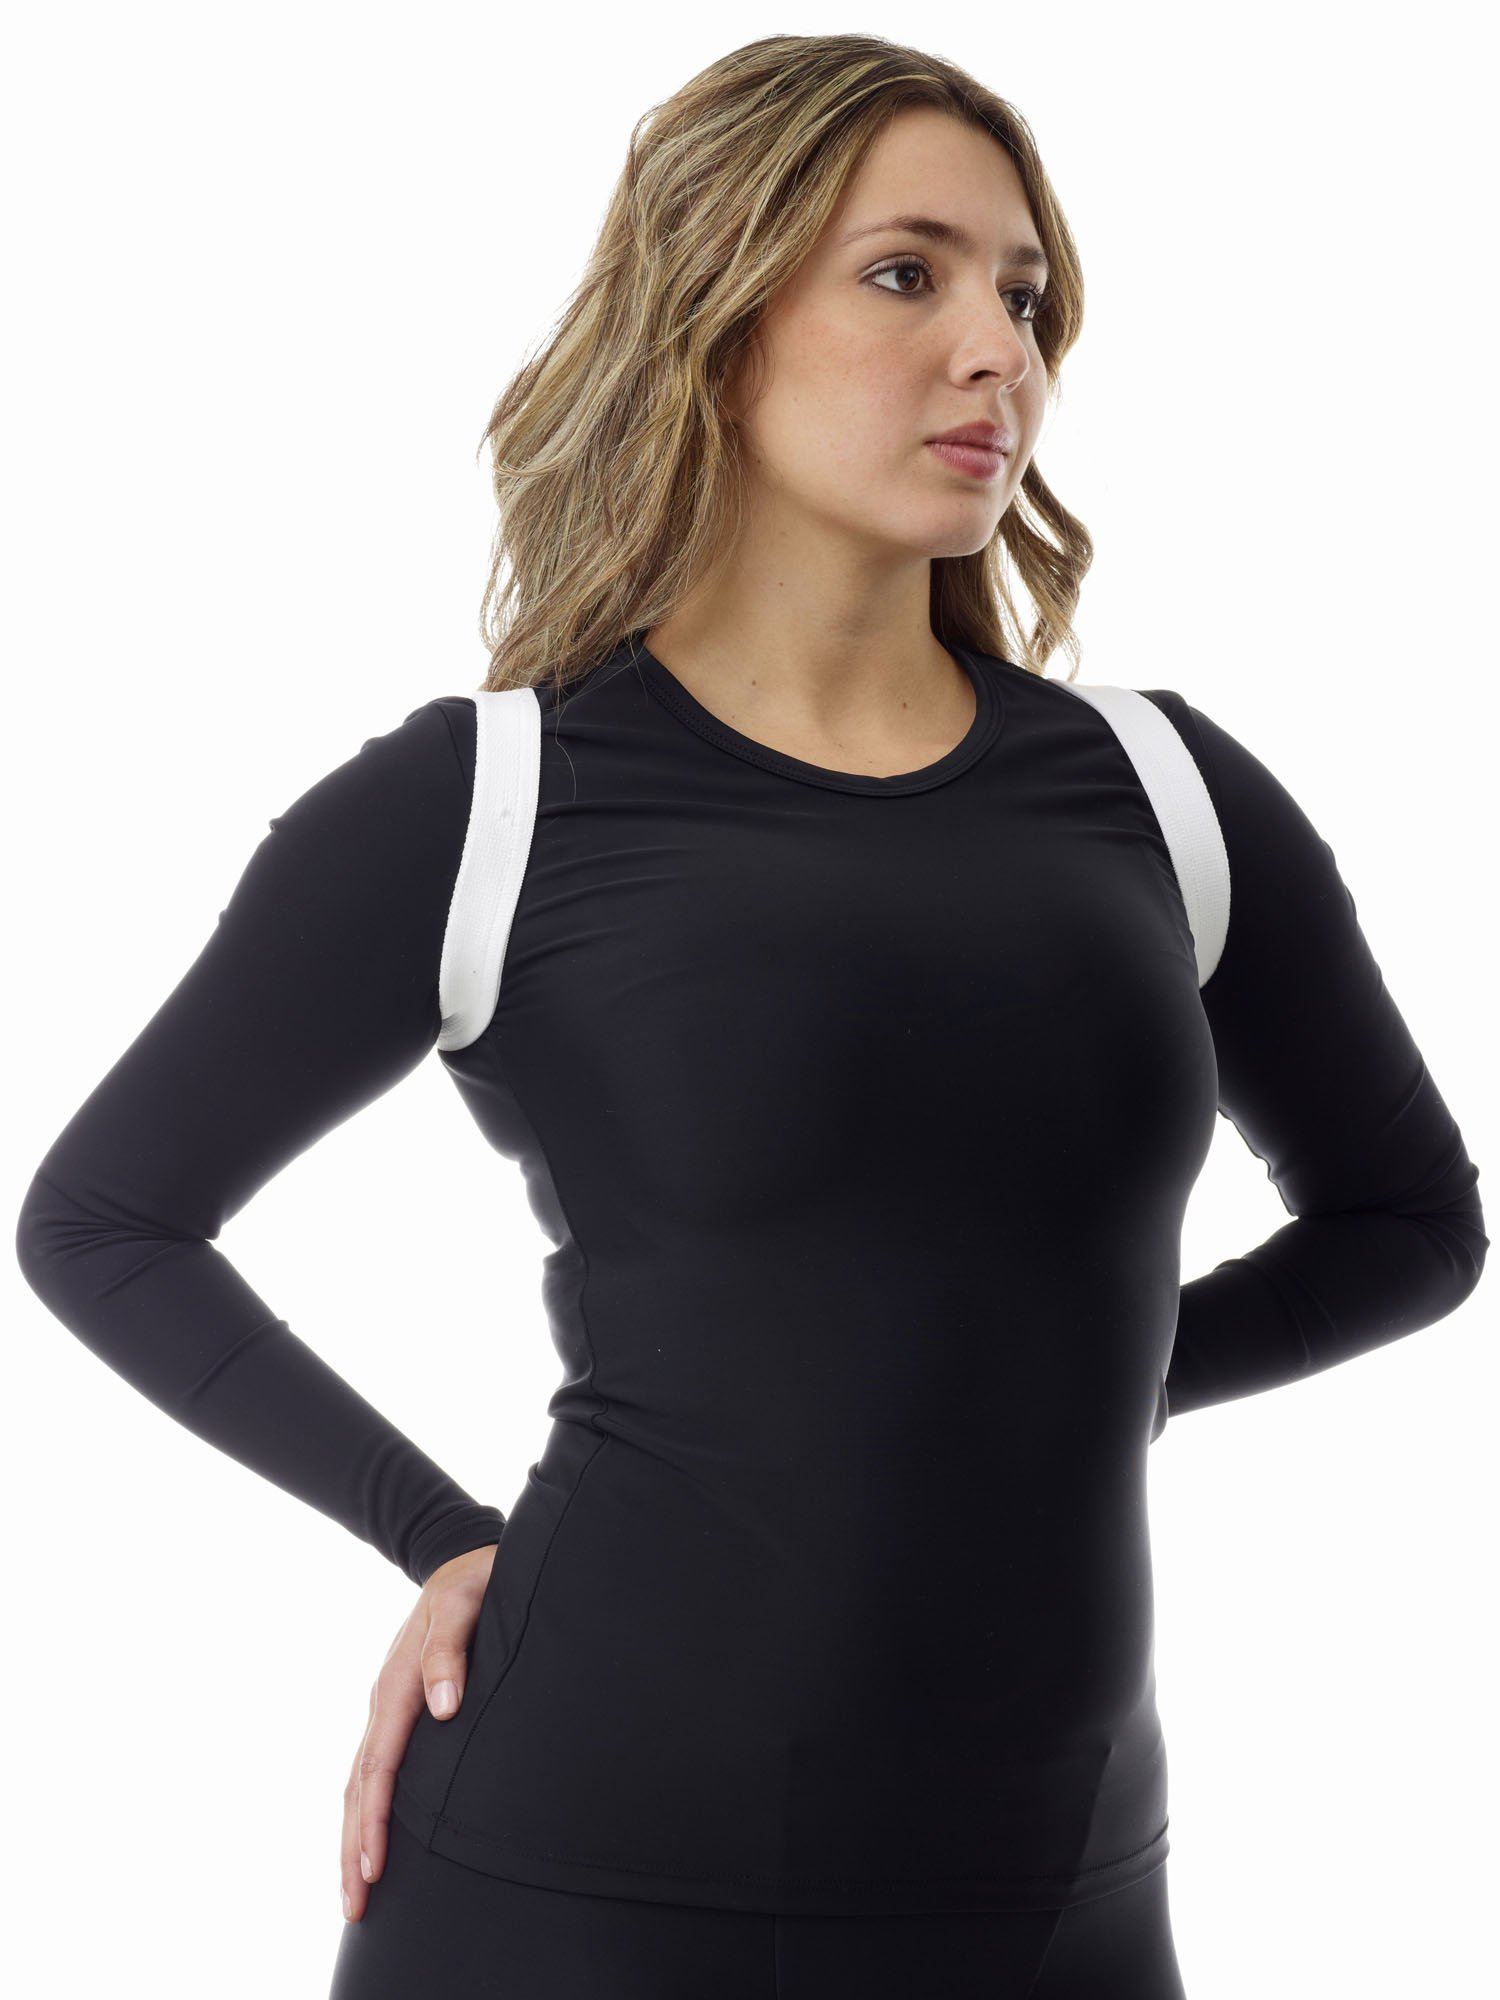 Posture Braces – Purpose, Benefits and Types